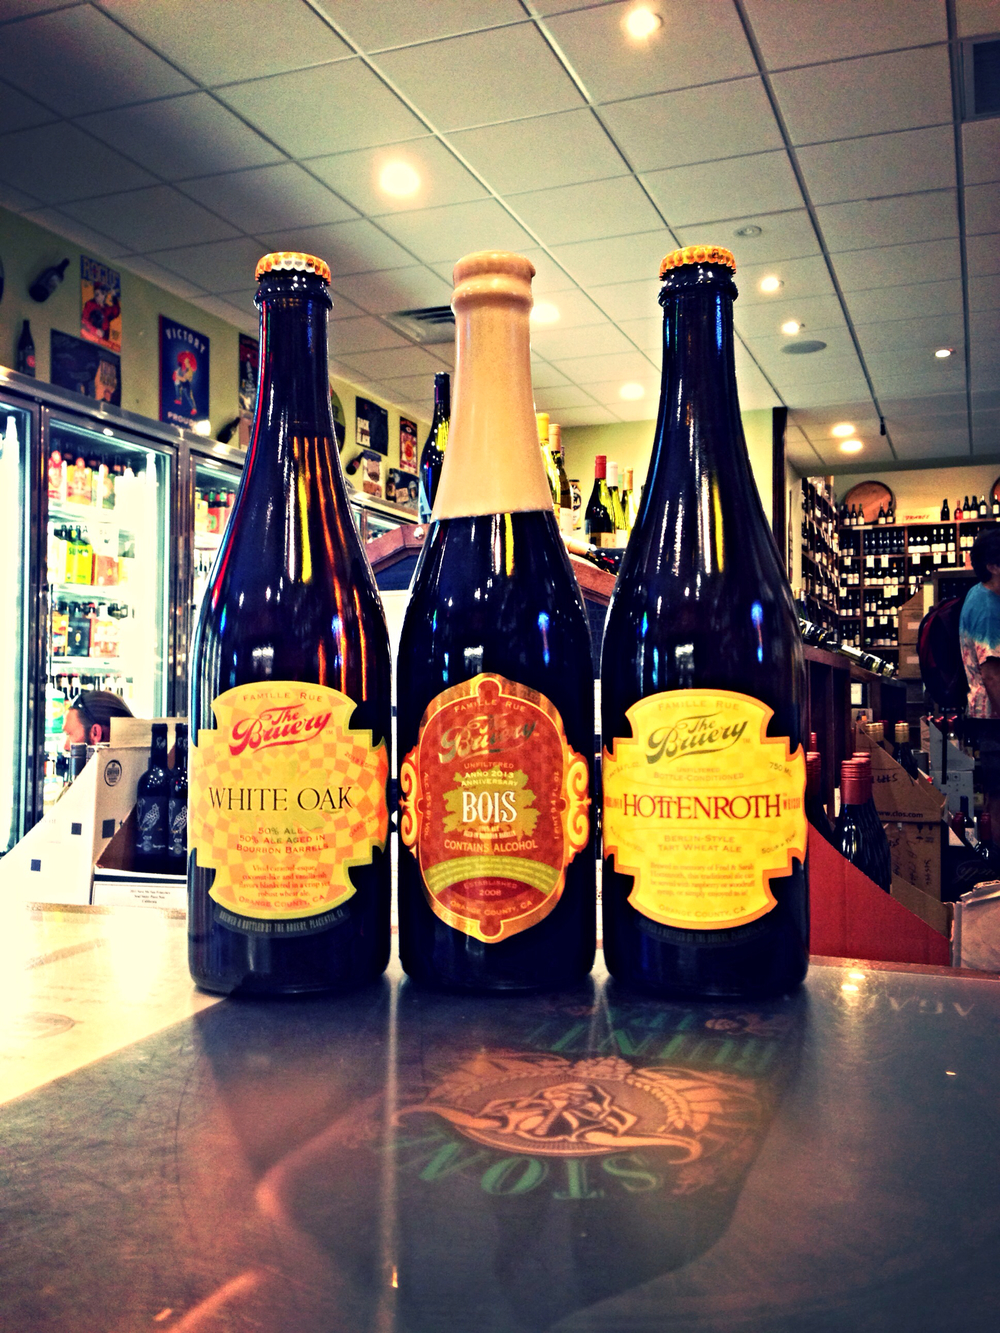 The Bruery White Oak, Bois Anniversary Ale, and Hottenroth